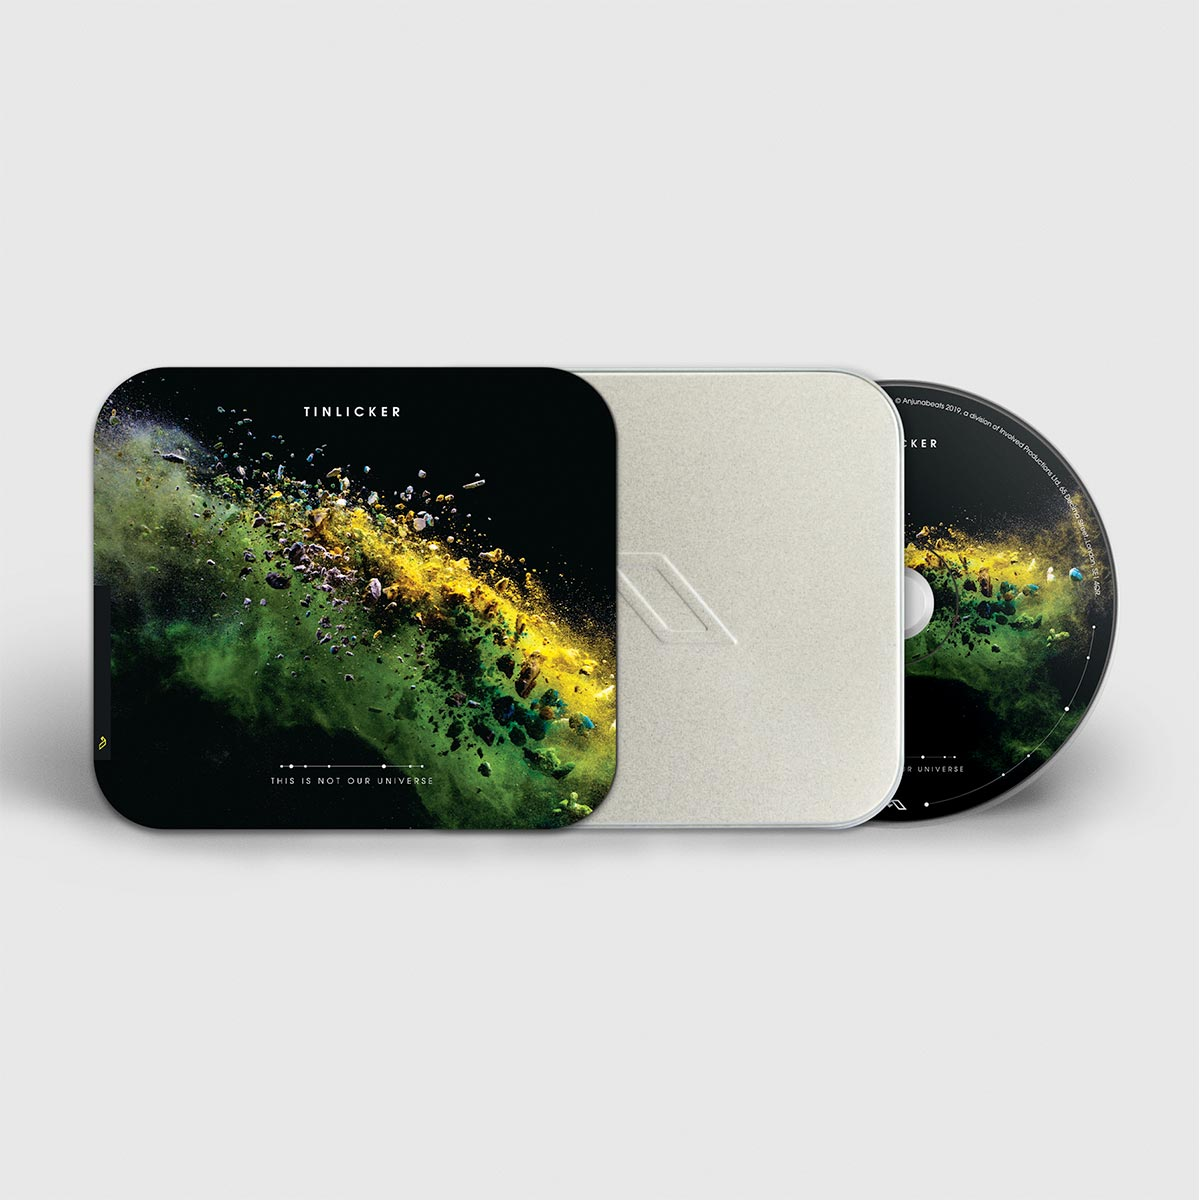 This Is Not Our Universe CD